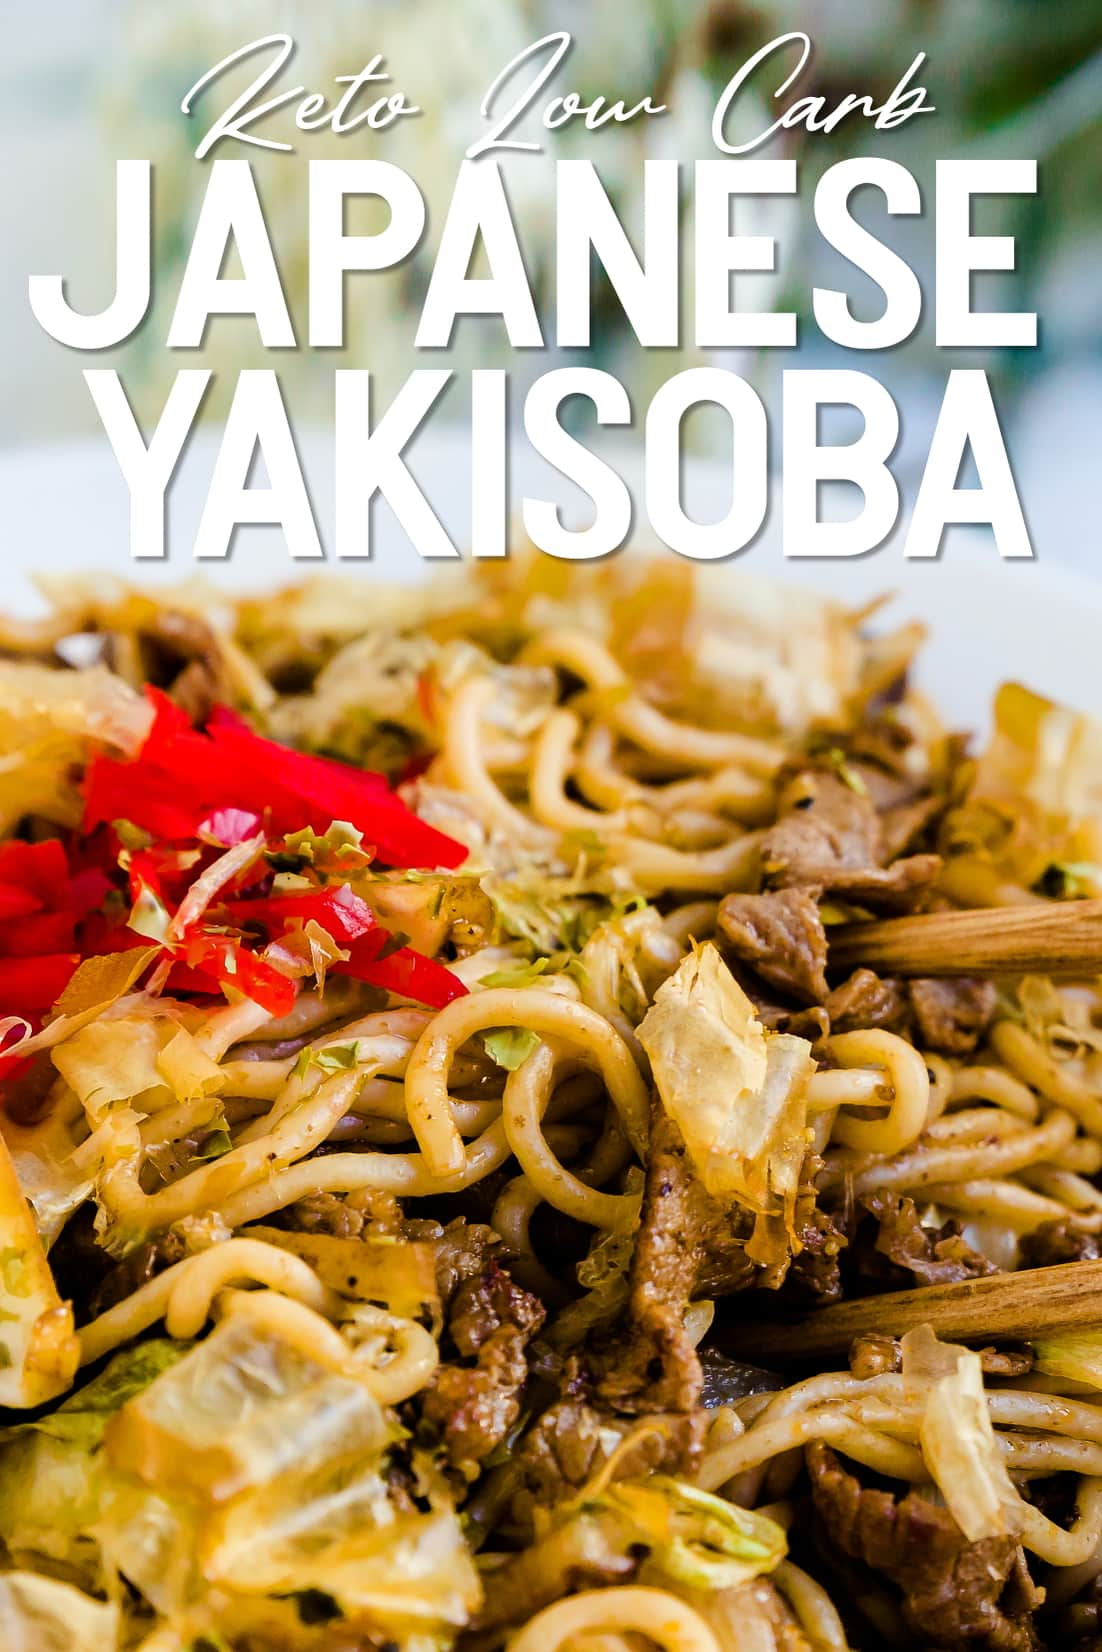 Low Carb Stir Fry Noodles Yakisoba with chopsticks